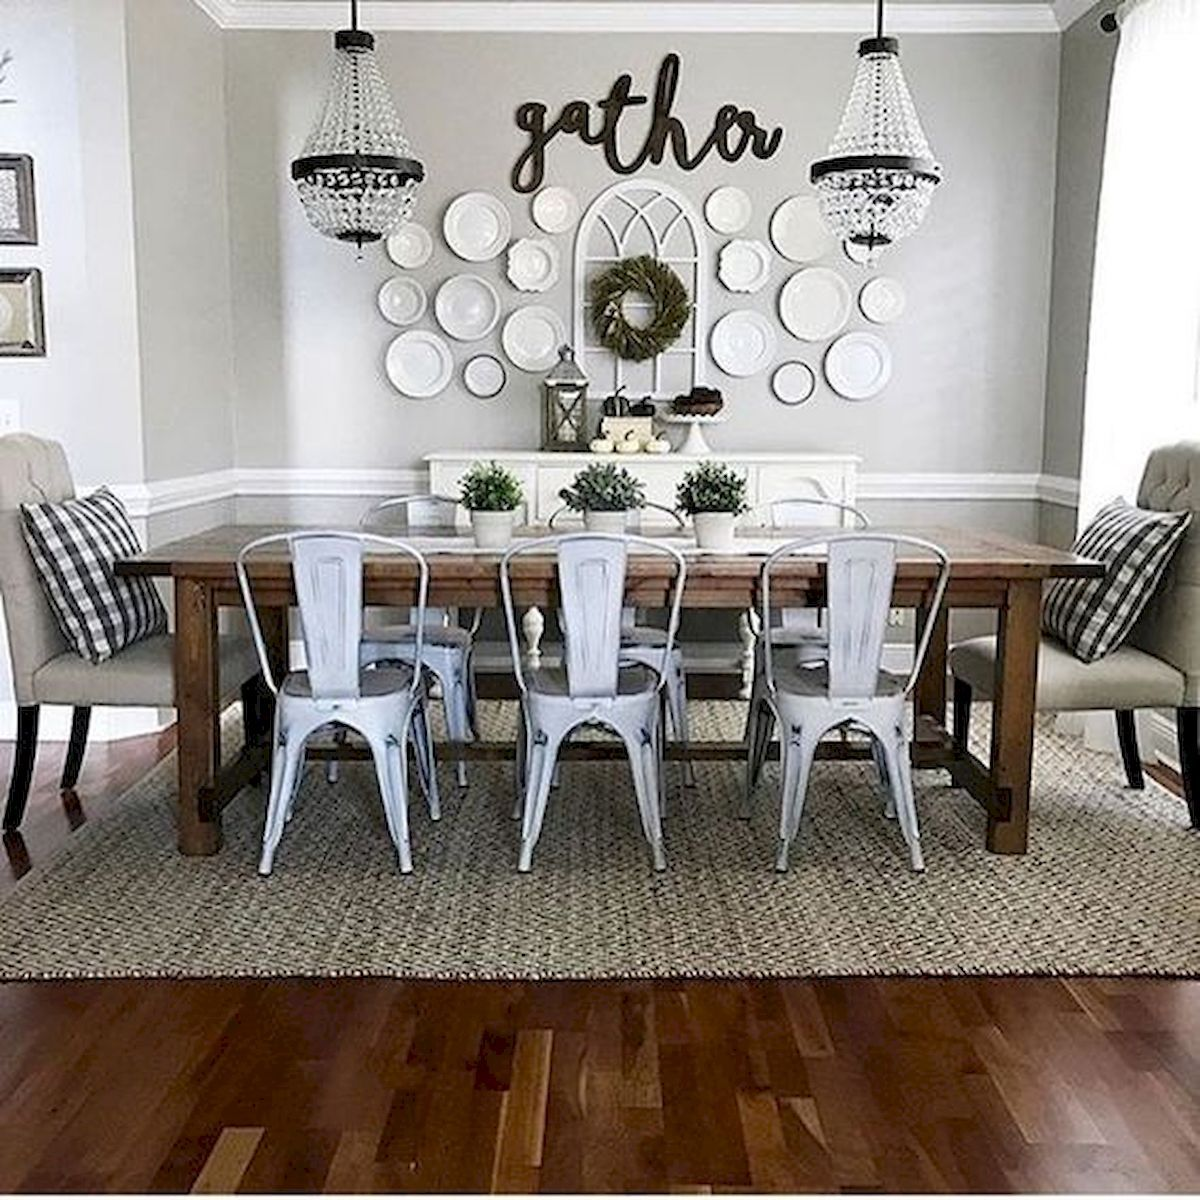 33 Adorable Dining Room Wall Art Ideas And Decor images